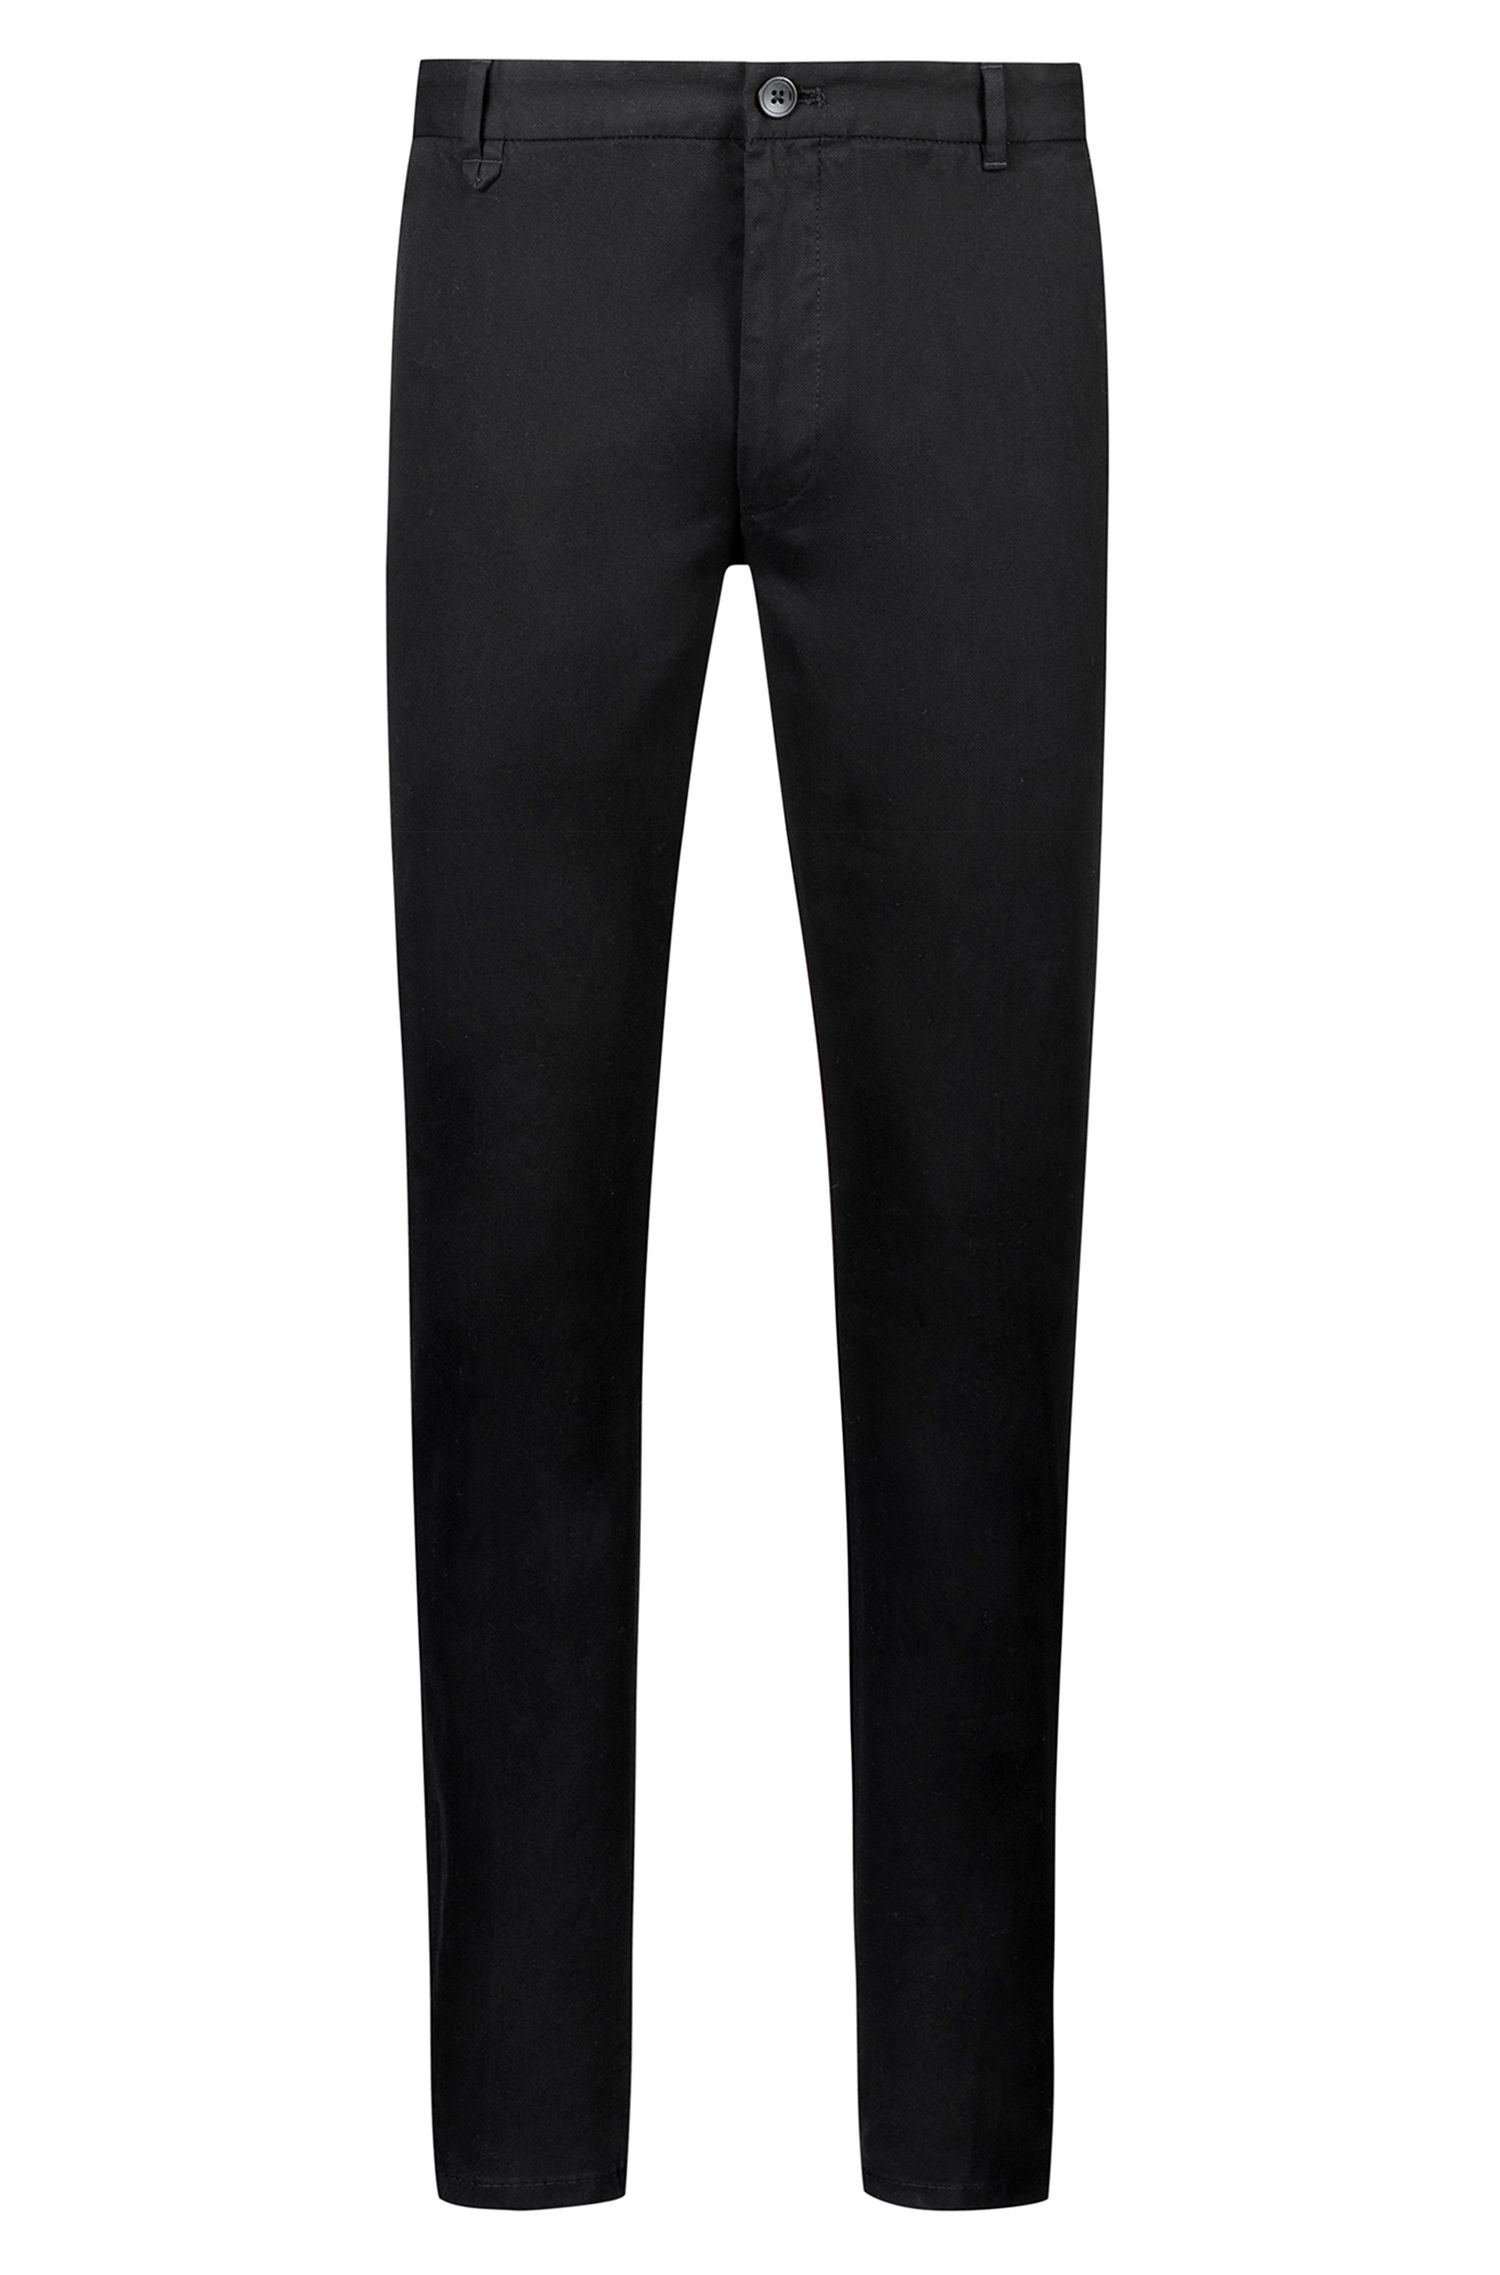 Pantalon Extra Slim Fit en coton stretch structuré, Noir